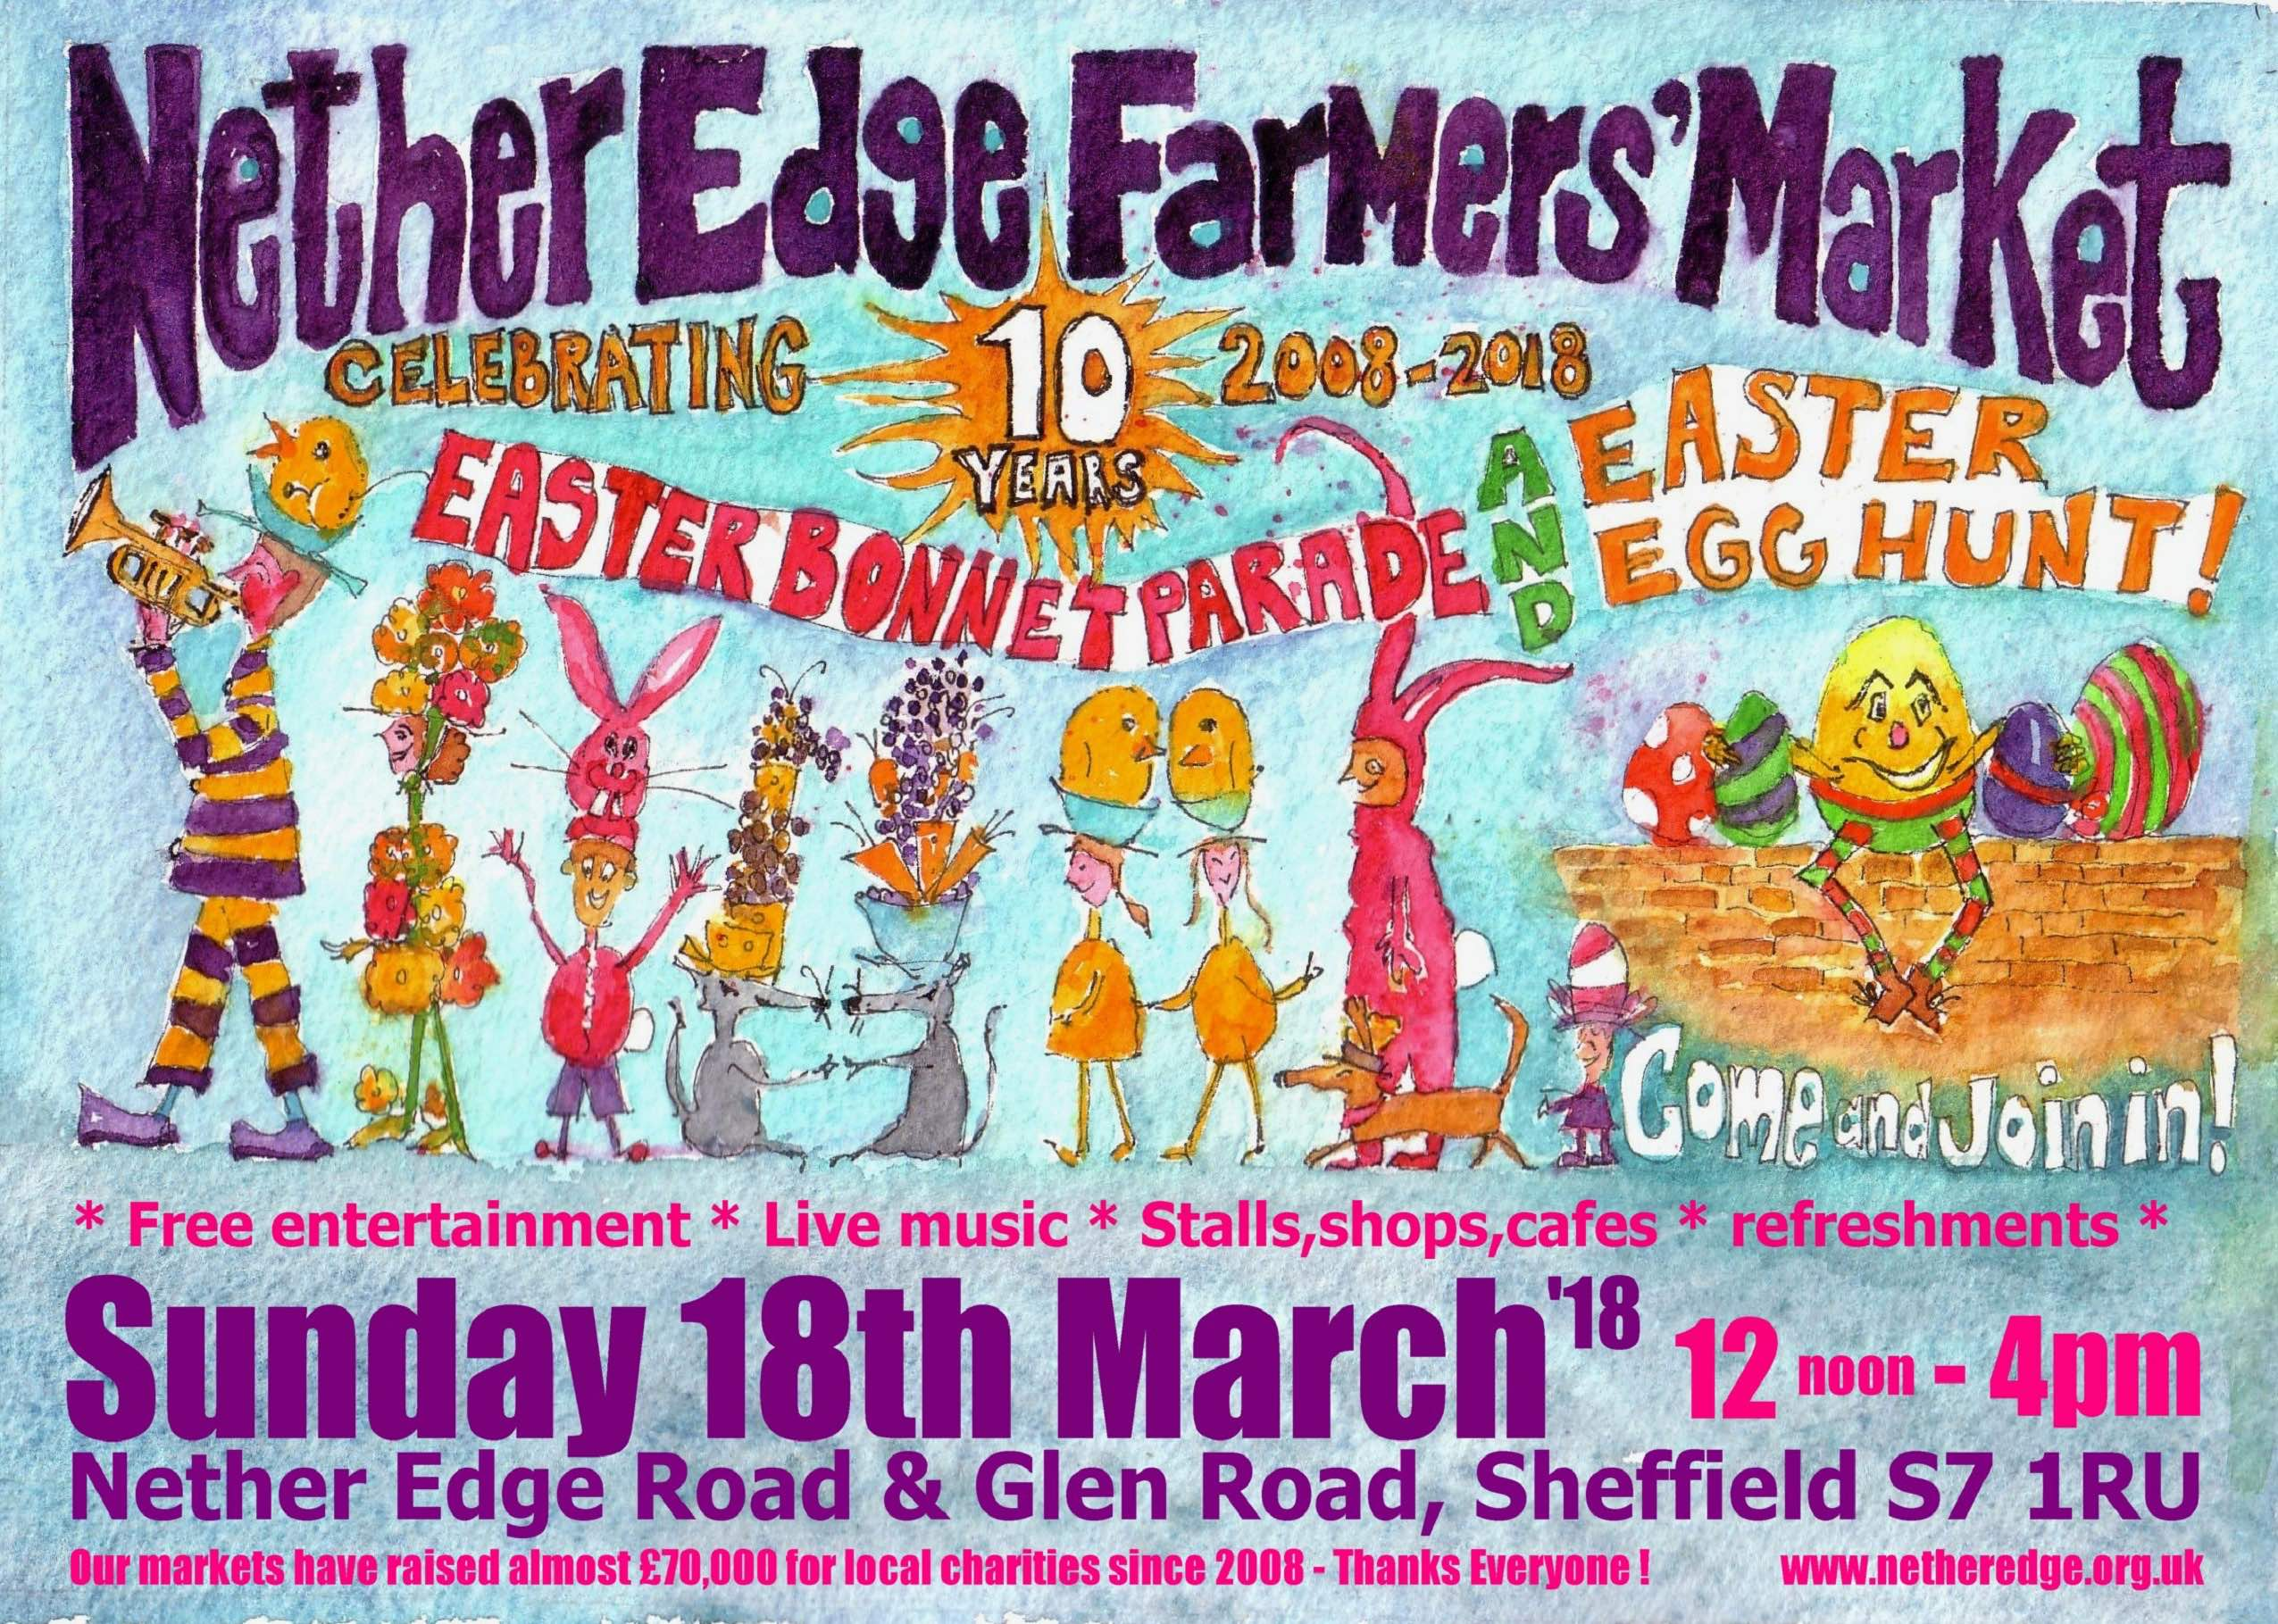 Nether Edge Farmers Market 18 March - 10th anniversary